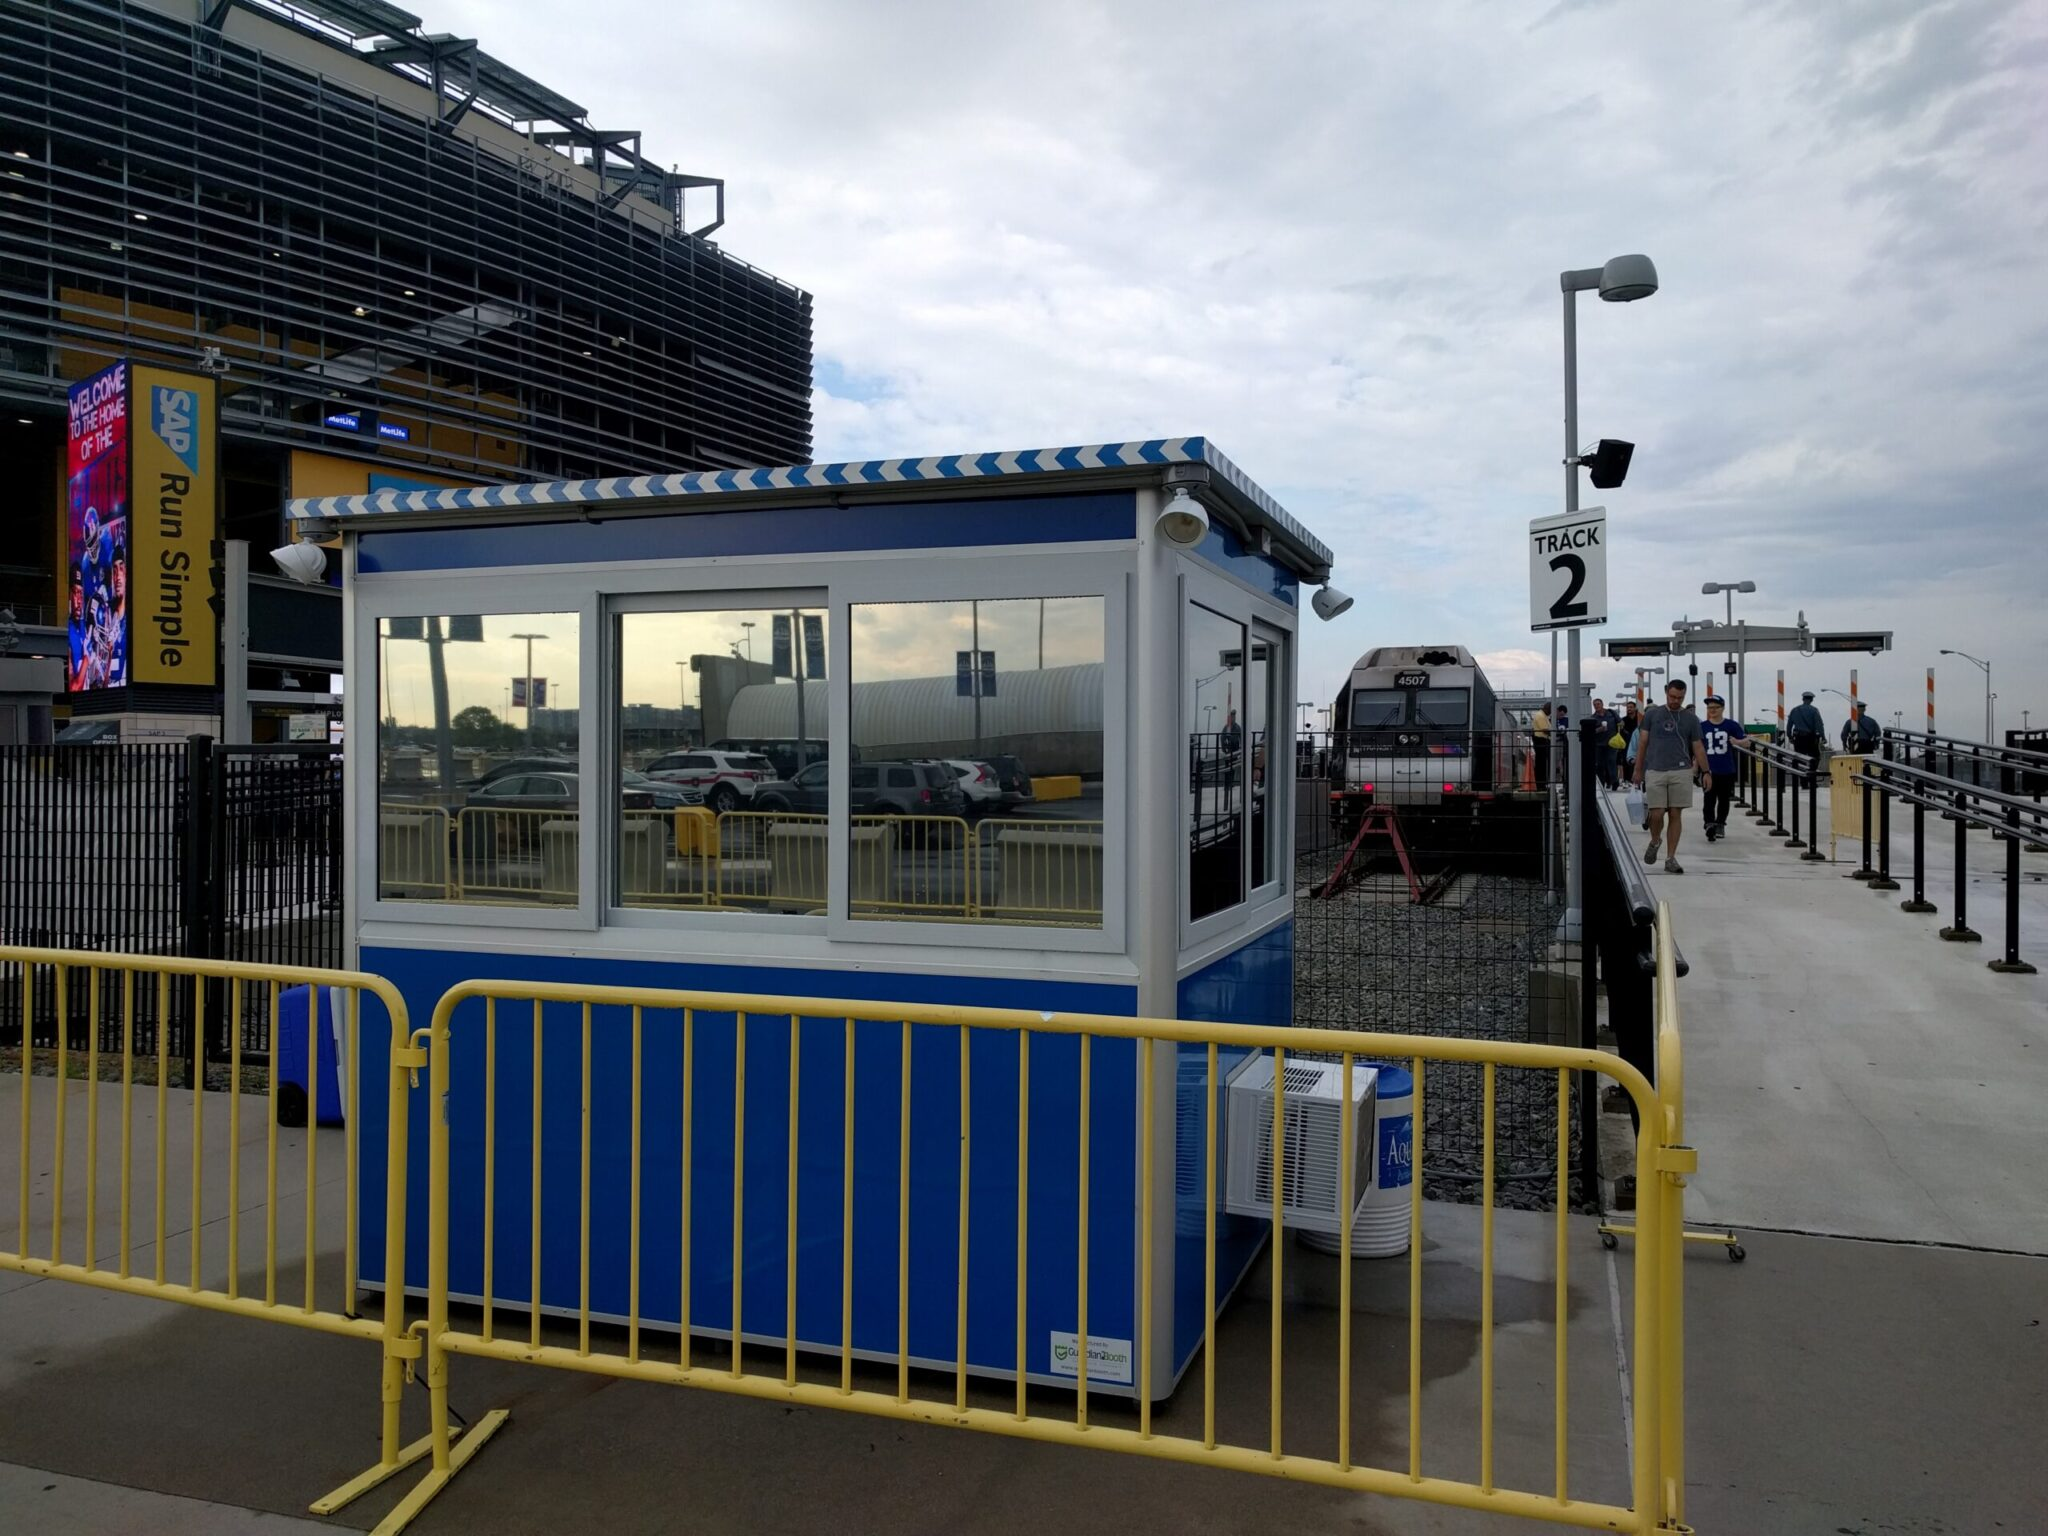 6x8 Security Guard Booth in Rutherford, NJ outside the Stadium with Tinted Windows, Sliding Windows, and Fencing